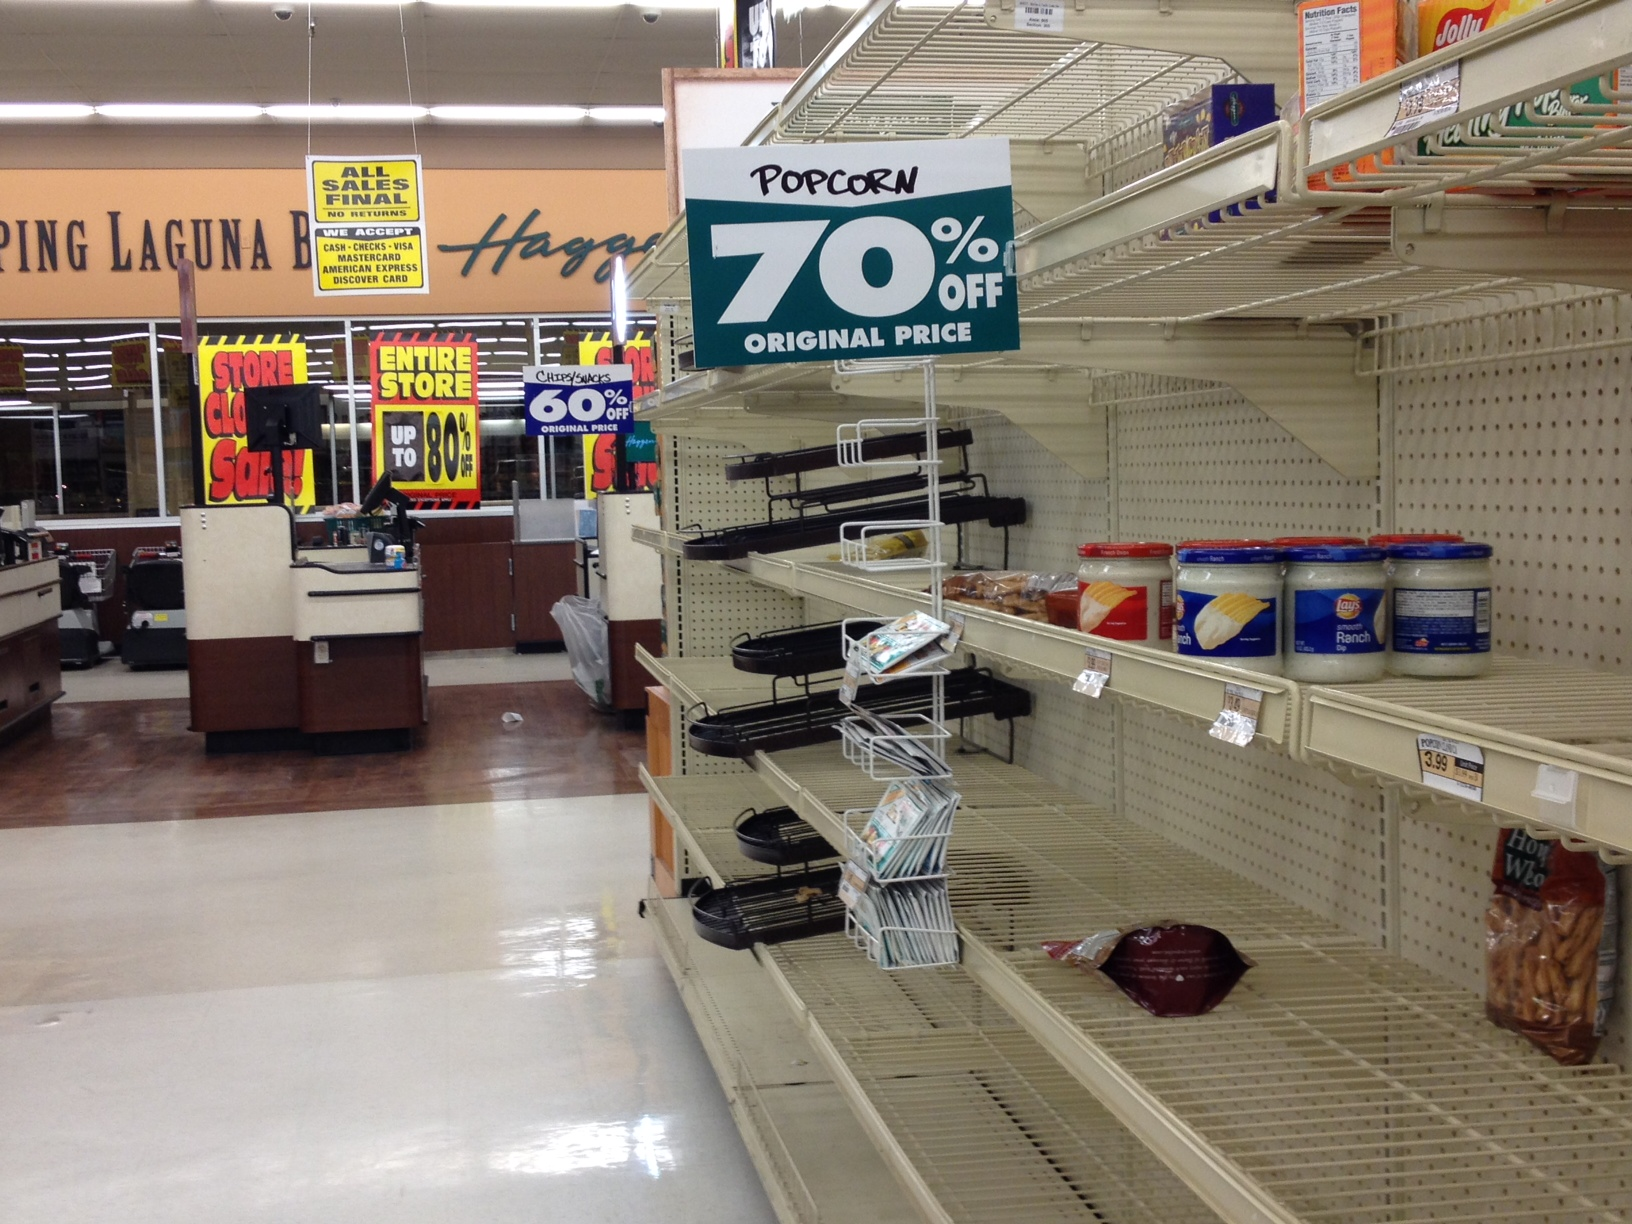 The scarce inventory on the last day of operations by Haggen in South Laguna.